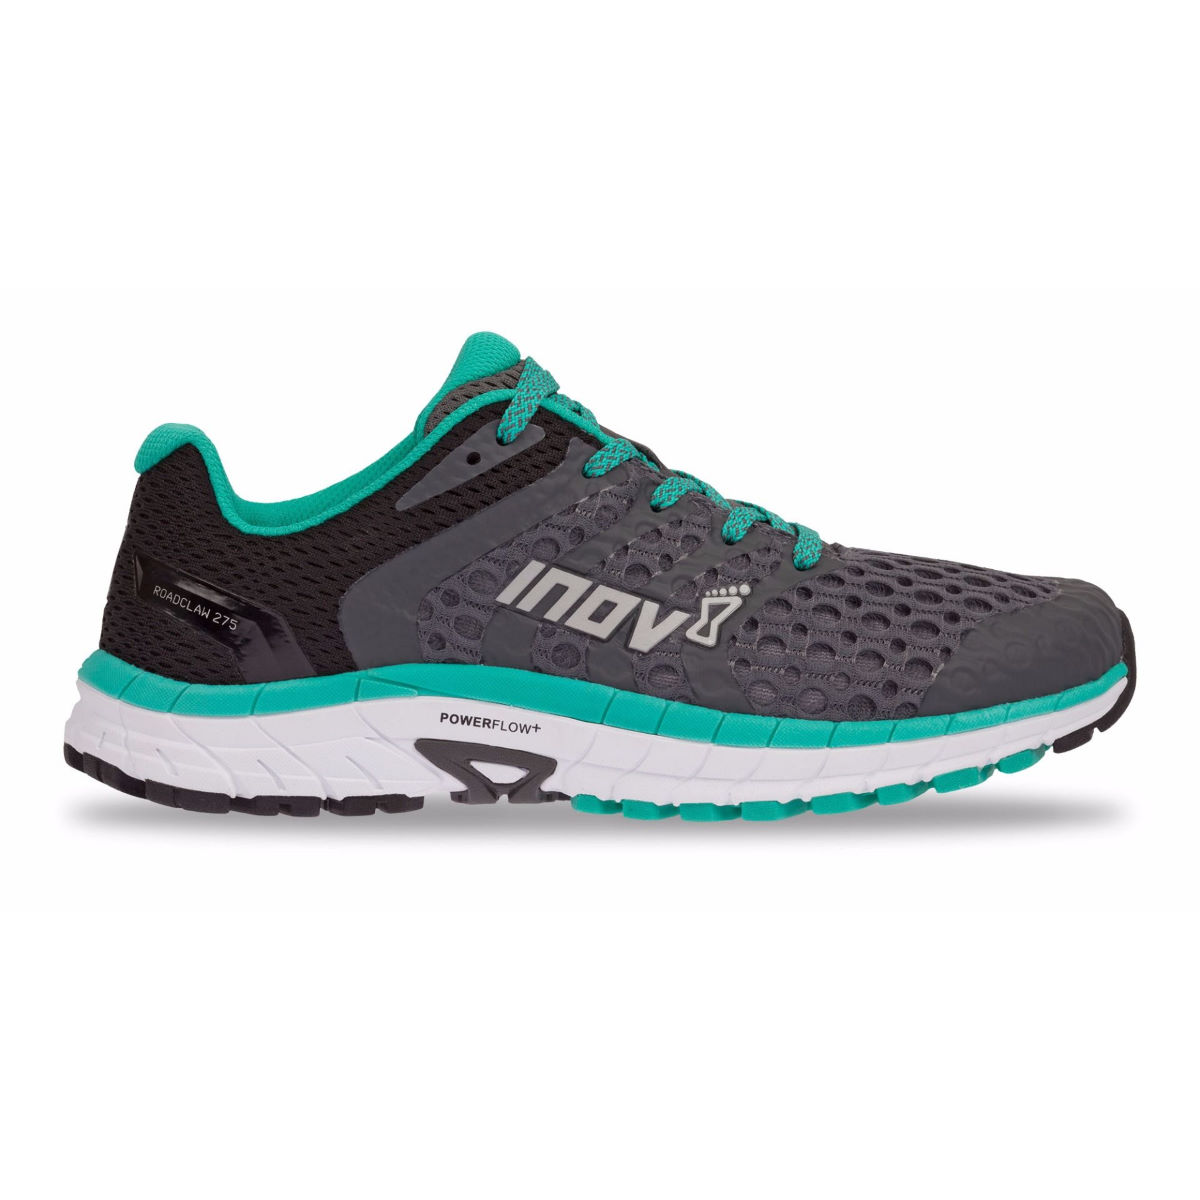 Chaussures Femme Inov-8 Roadclaw 275 v2 - UK 4 GREY/TEAL